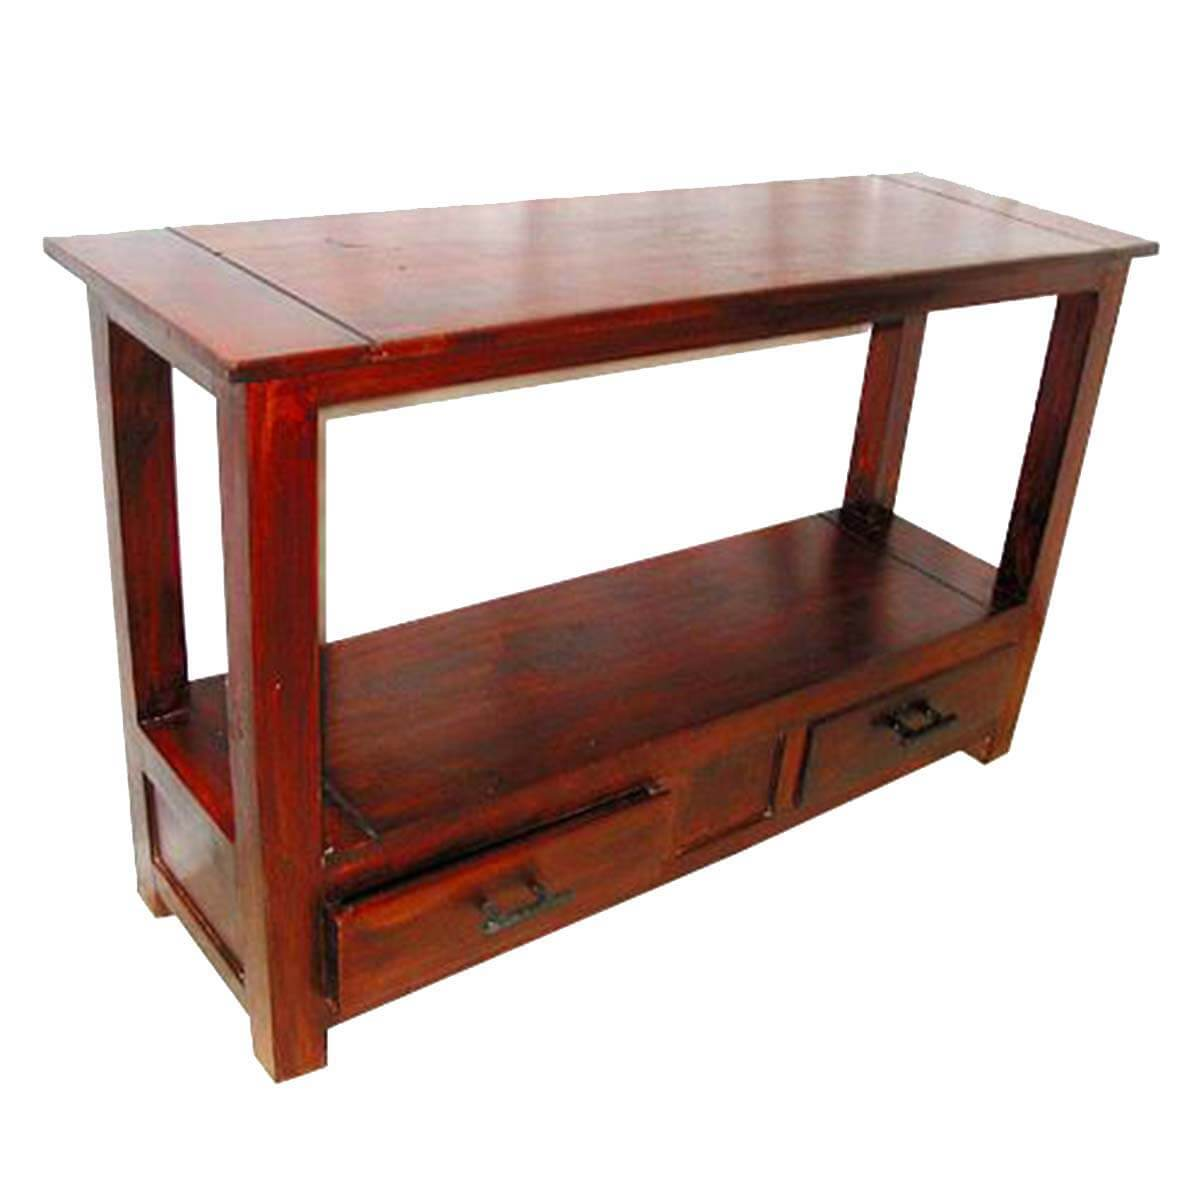 Solid wood console hall entry foyer table furniture for Table console